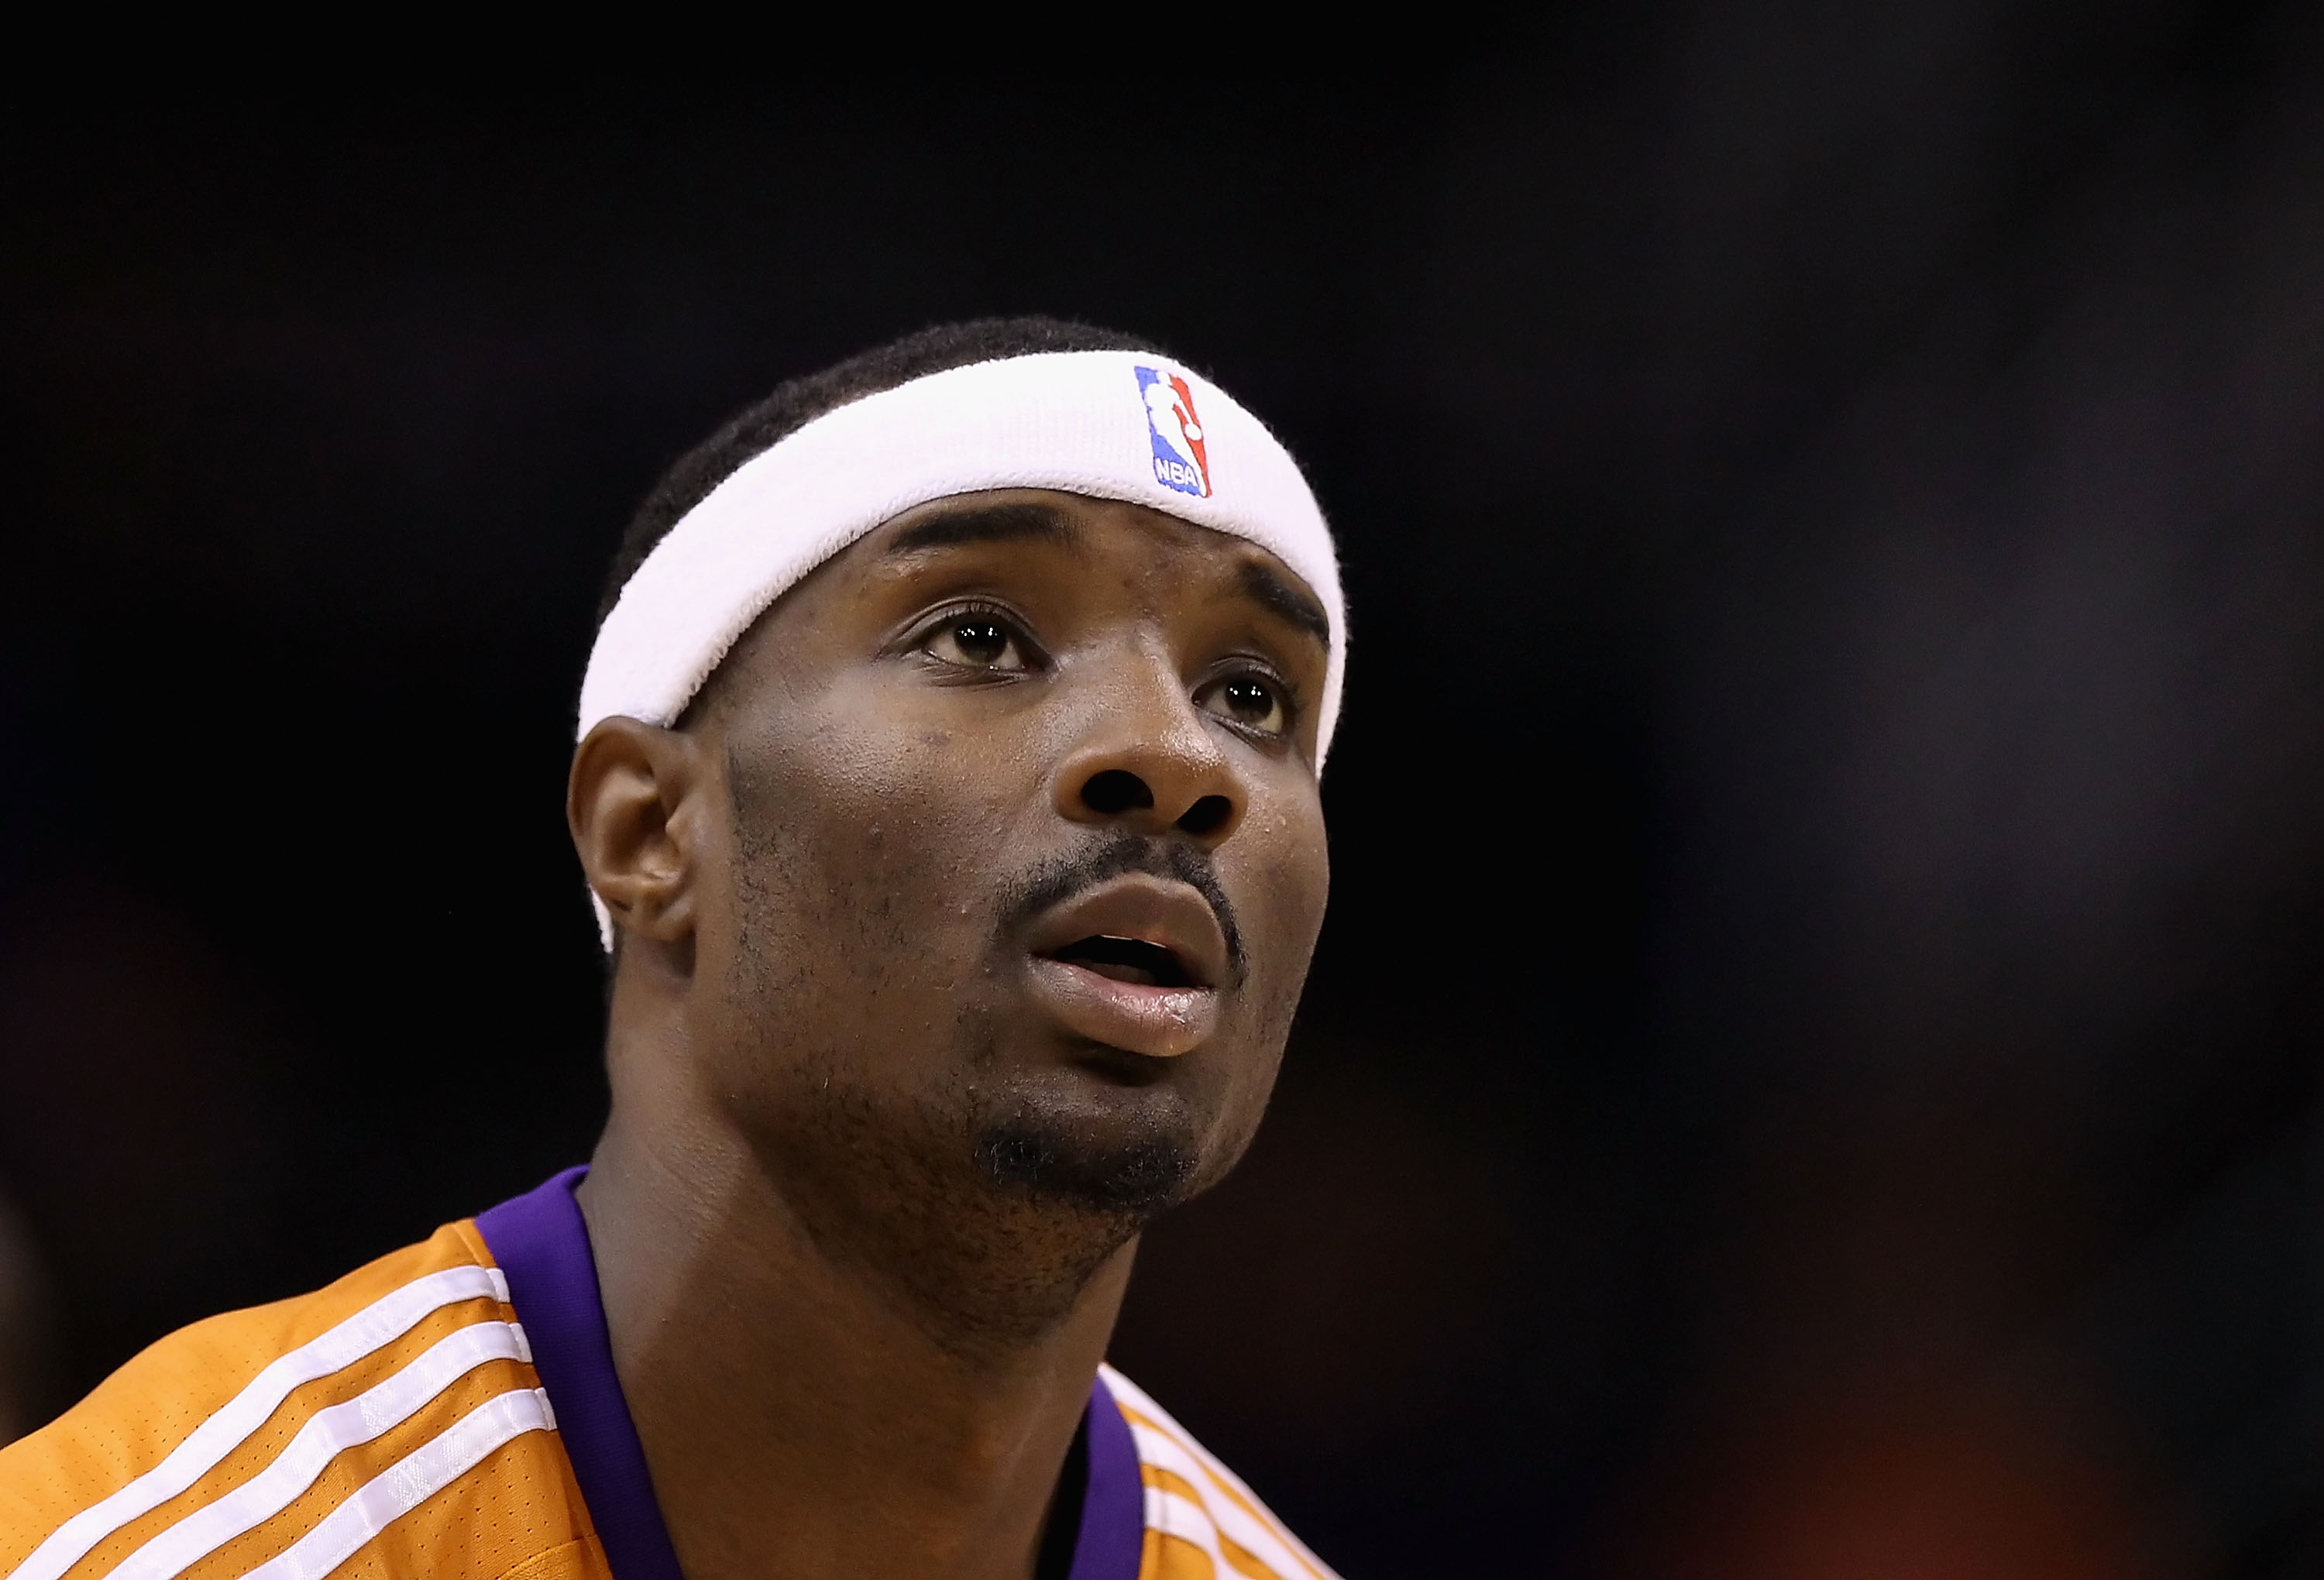 PHOENIX - OCTOBER 12:  Gani Lawal #31 of the Phoenix Suns warms up before the preseason NBA game against the Utah Jazz at US Airways Center on October 12, 2010 in Phoenix, Arizona. NOTE TO USER: User expressly acknowledges and agrees that, by downloading